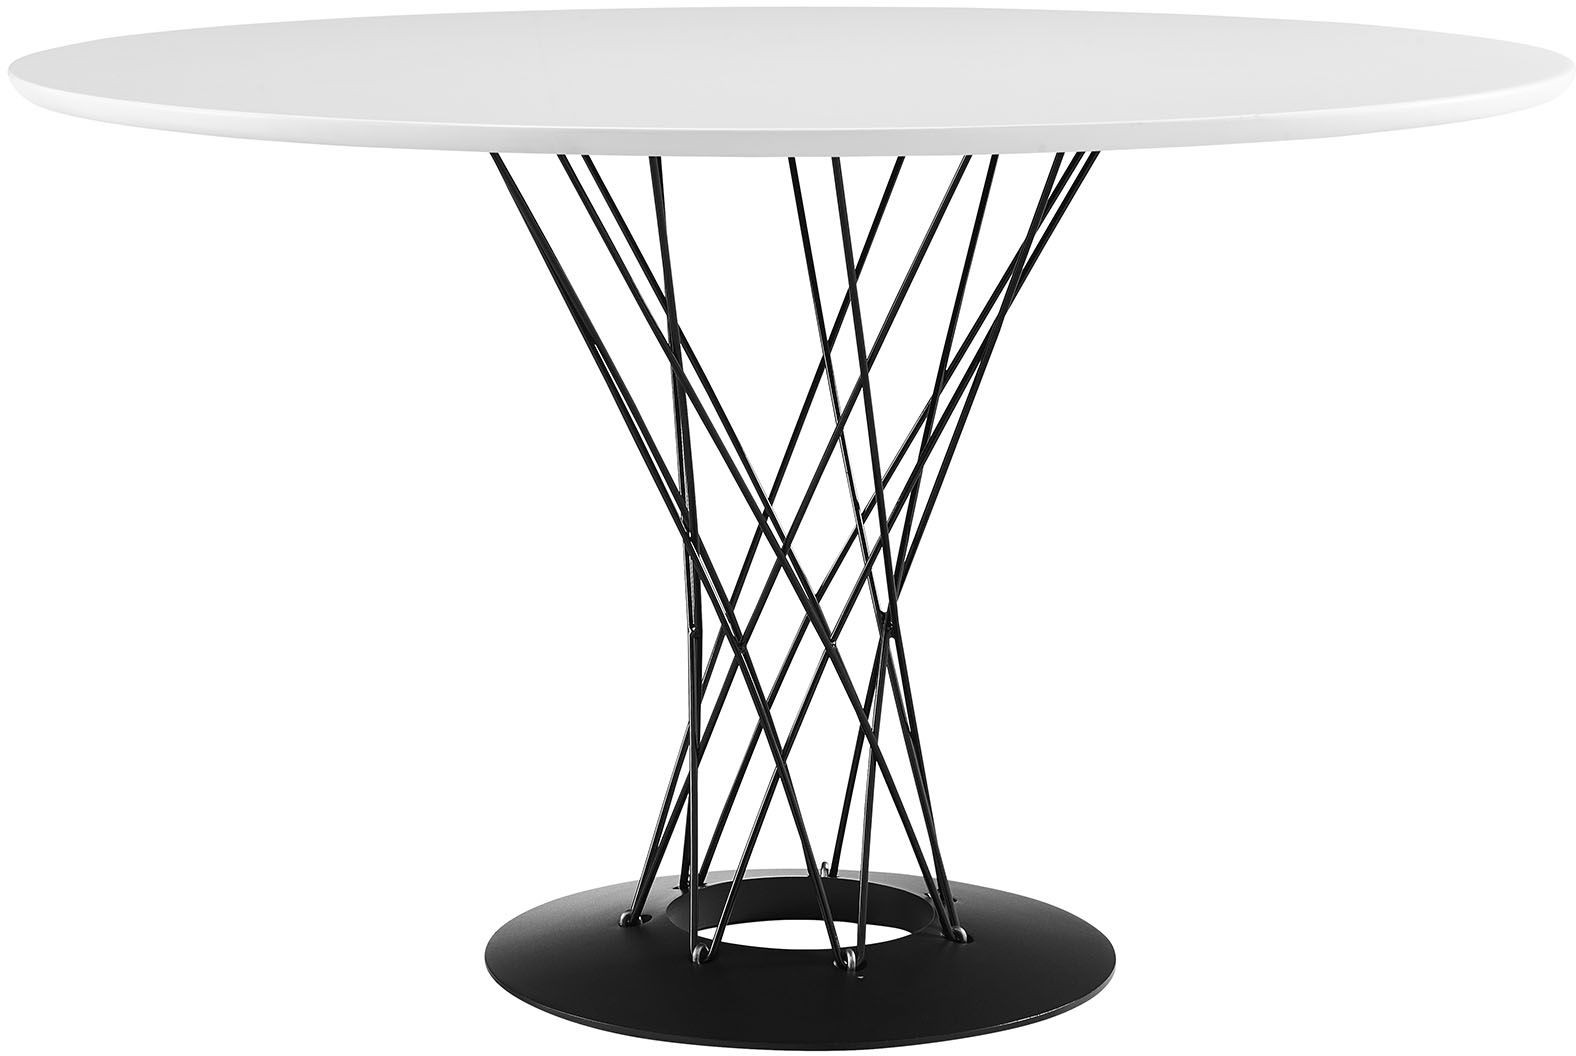 Cyclone White Wood Top Dining Table from Renegade  : eei 1713 whi from colemanfurniture.com size 1576 x 1056 jpeg 117kB